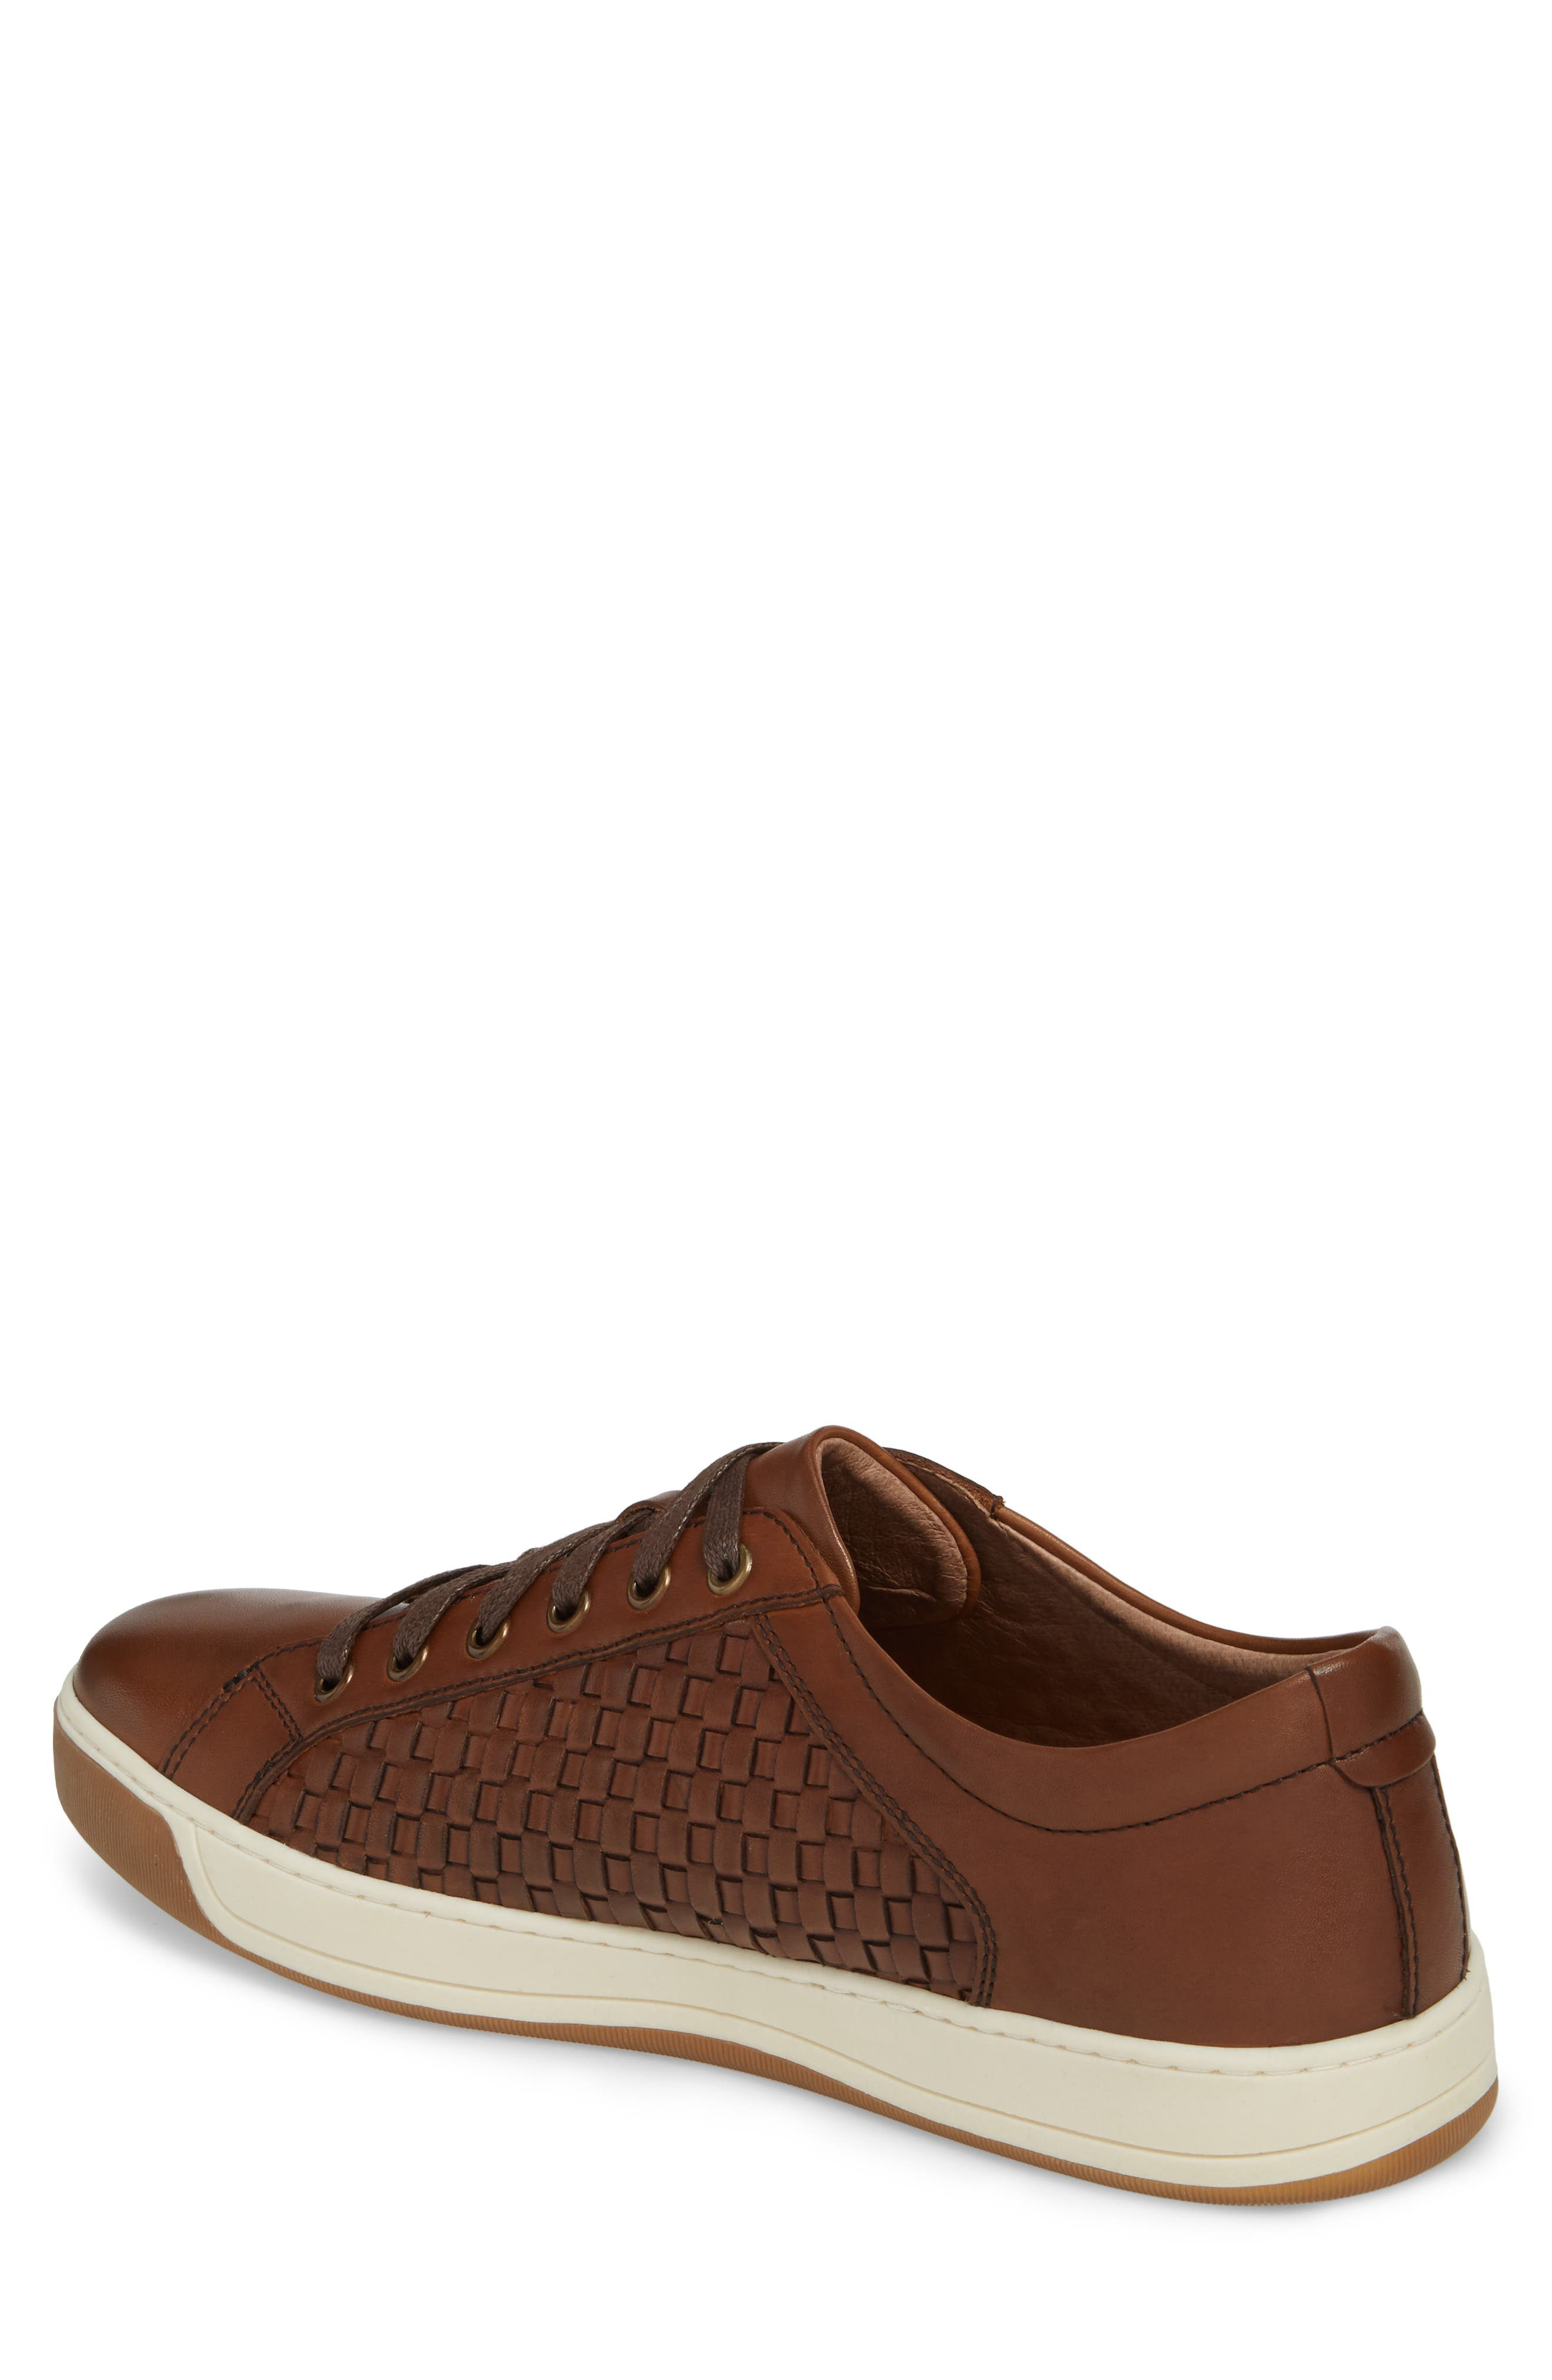 Allister Woven Low Top Sneaker,                             Alternate thumbnail 2, color,                             BROWN